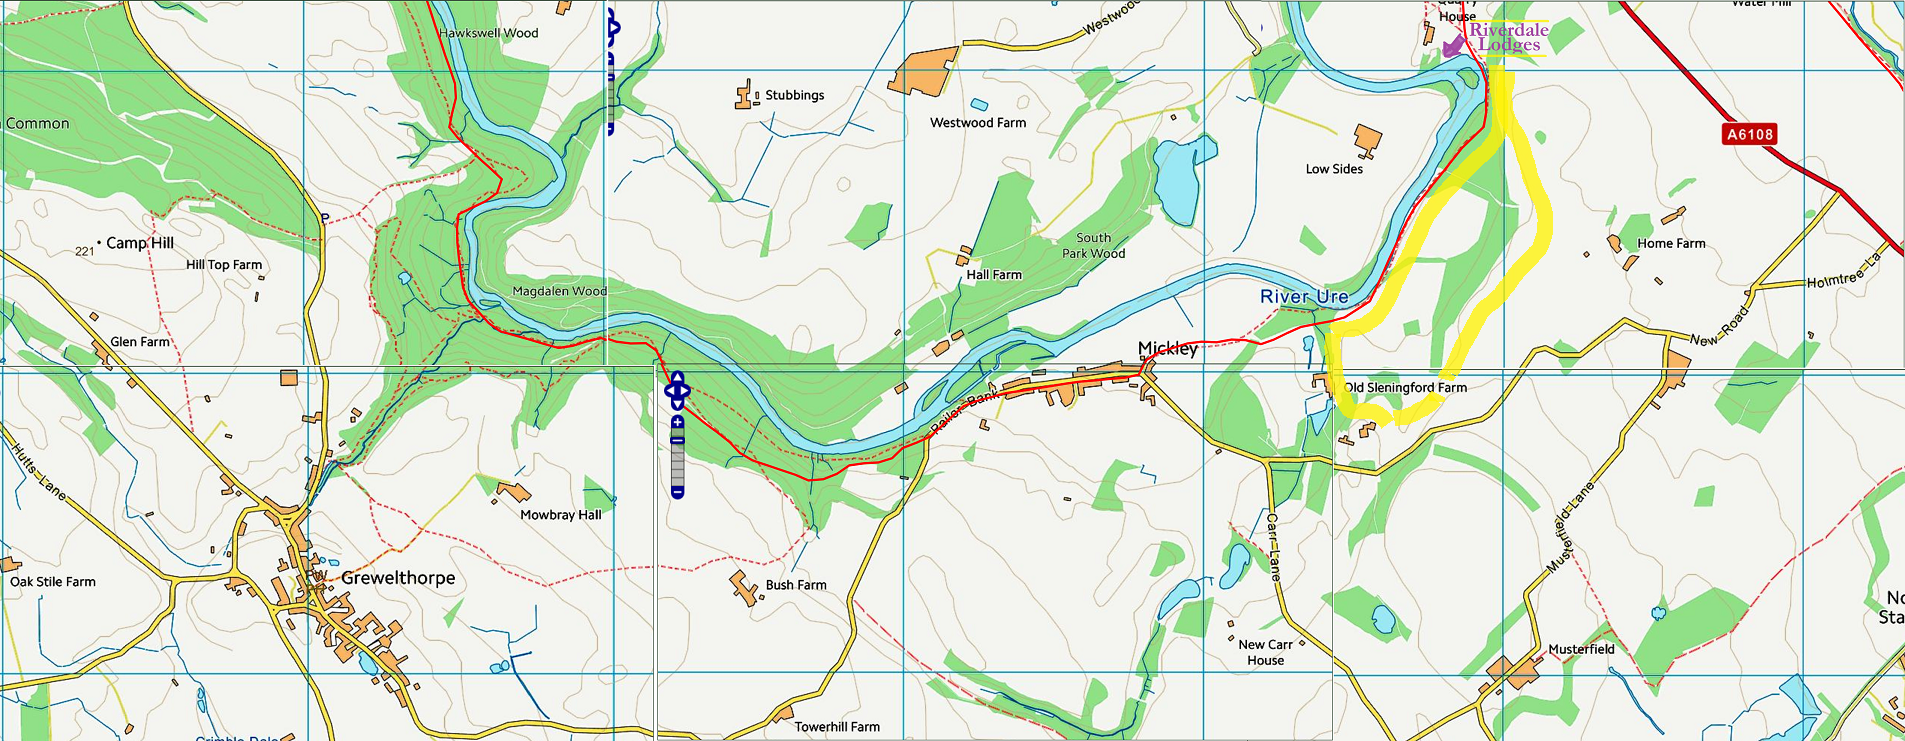 The red track along the river forms part of a famous long distance trail, the Ripon Rowel Walk and we marked Riverdale Lodges in the top right section of this map. The walk described above, covers only the area marked in yellow, and you can see it is just a tiny part of the huge walking possibilities. If you're up for more, then it will take close to 3 hours (one-way) to follow the path along the river all the way to the enchanting Hackfall with grottos and glades, temple ruins and spectacular waterfalls. See also  https://www.woodlandtrust.org.uk/visiting-woods/wood-information/hackfall/  or the descriptions of  the walks at Hackfall . Luckily there are plenty of variations with a stop at a dog-friendly pub in Grewelthorpe and maybe call it a day and arrange a taxi for the way back? Or start the day with a short (taxi)drive (15 minutes) to the car park at Hackfall and walk all the way home?   Other strong favourites among our guests, that require just a quick hop in the car, are Brimham Rocks (a stunningly beautiful drive of 35 minutes), Studley Royal / Fountains Abbey (20 minutes by car) where especially the Seven Bridges Valley Walk is highly recommended, and a bit further away, to the other side of the A1, there is the historical railway over the North York Moors with a number of interesting walks linked to its stations. Click any of the pictures below to see the full package of information on their websites!